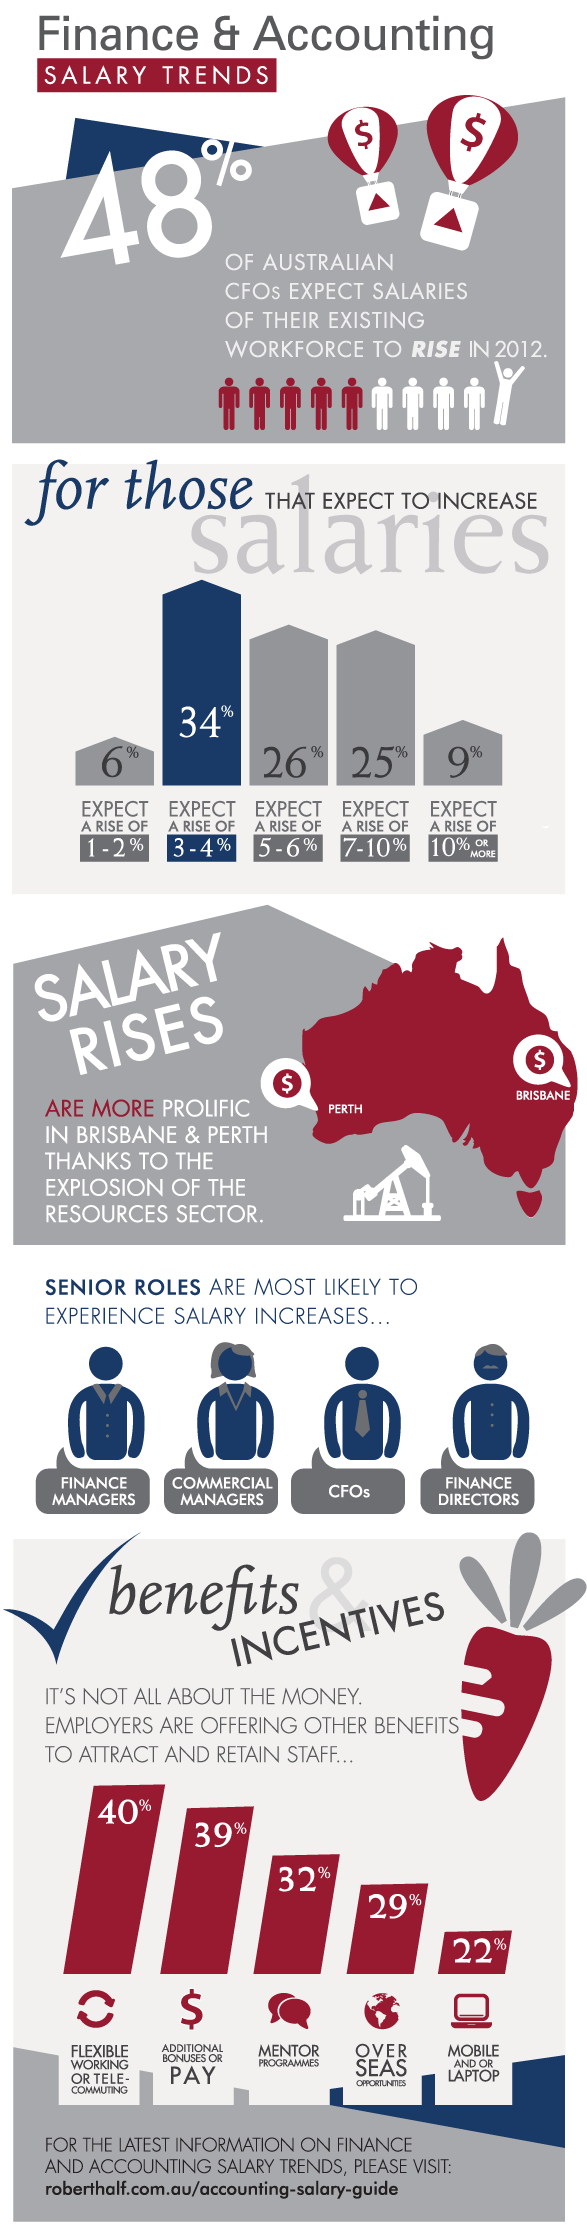 accounting-salaries-statistics infographic